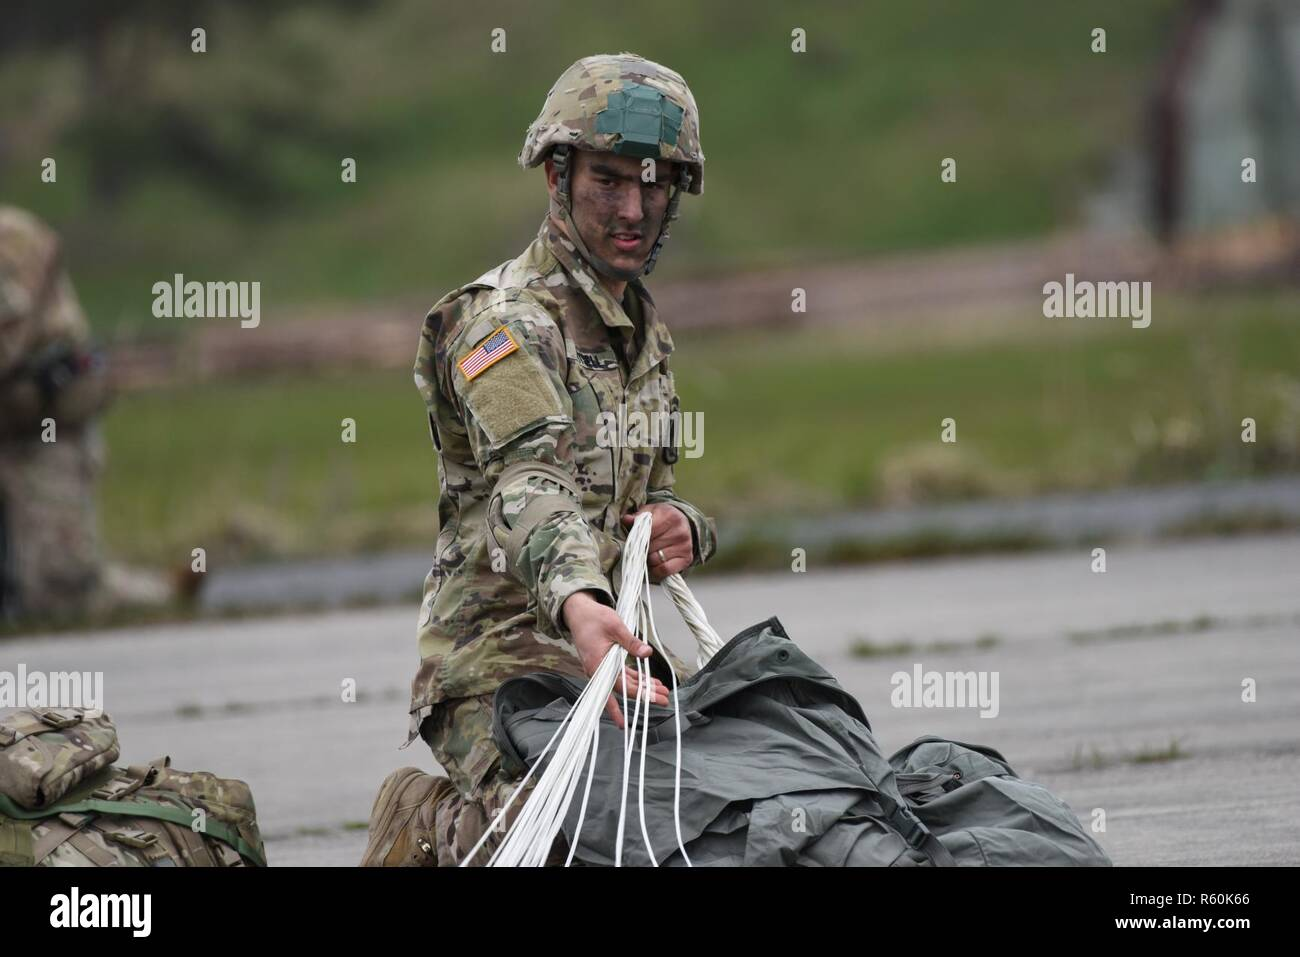 cd8fdbcef376e Parachute Regiment And Airborne Forces Stock Photos   Parachute ...